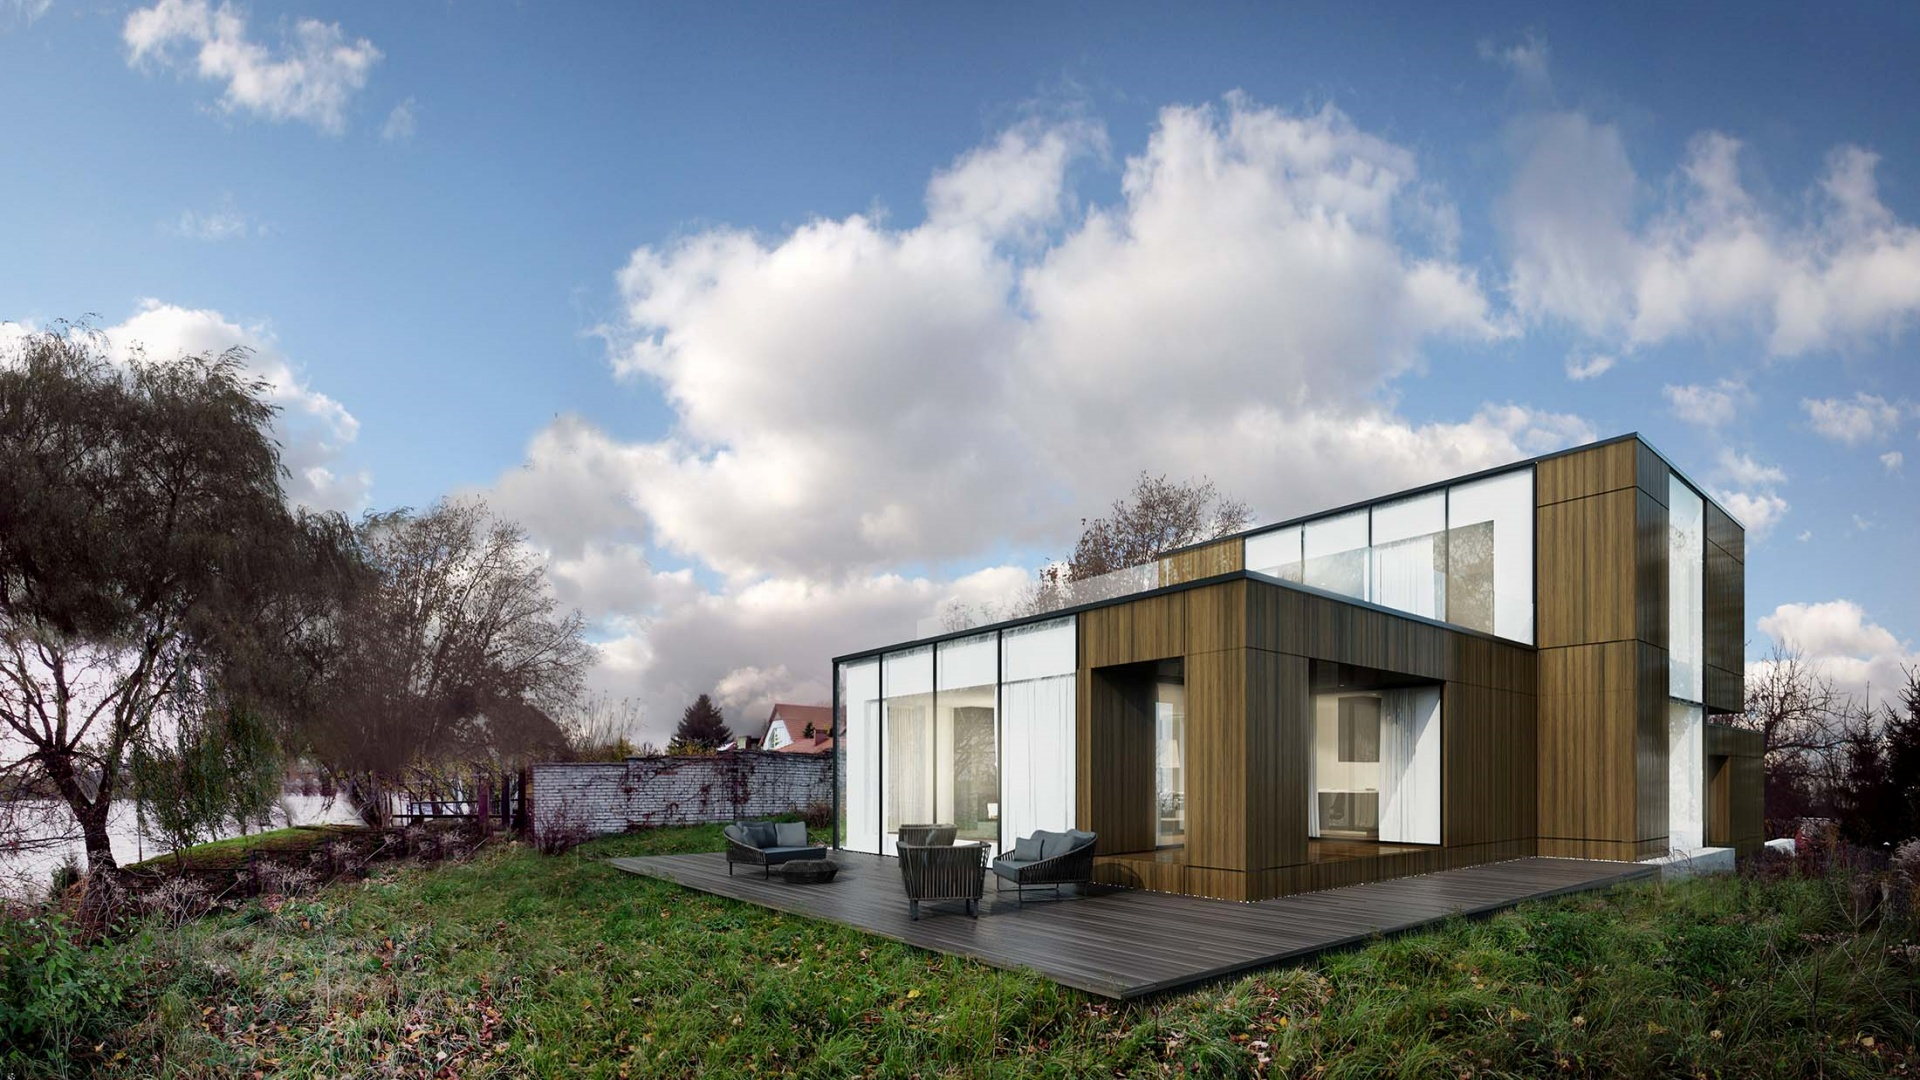 RE: TRIPLE BOX HOUSE projektu architekta Marcina Tomaszewskiego REFORM Architekt